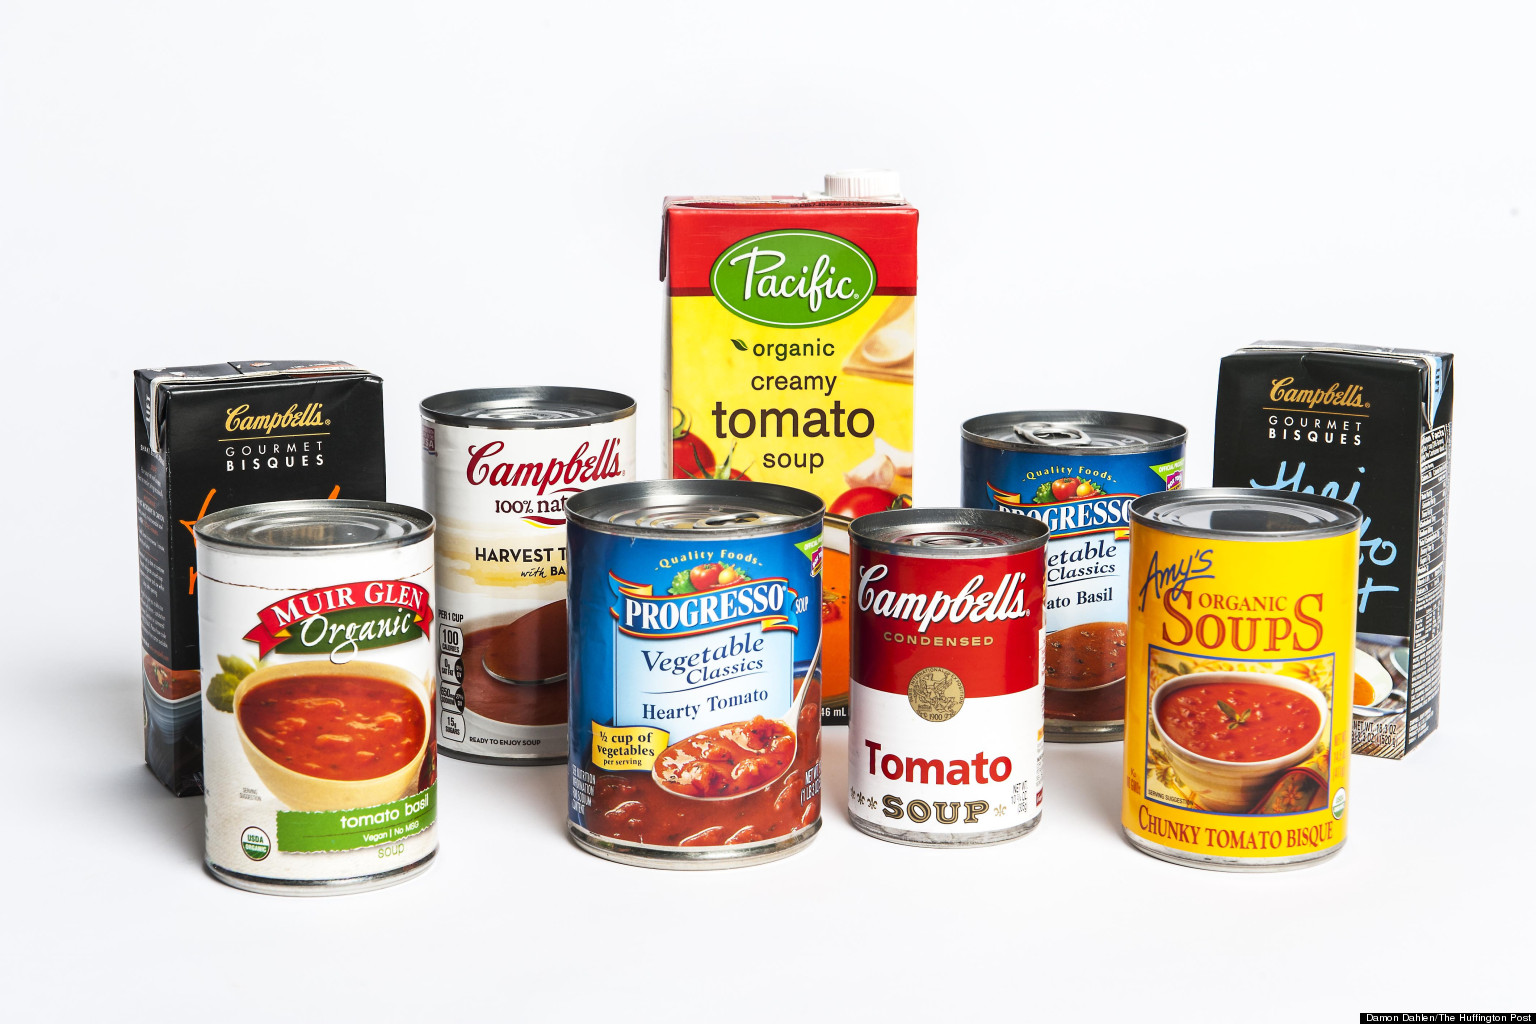 Taste Test: Which Tomato Soup Should You Buy?